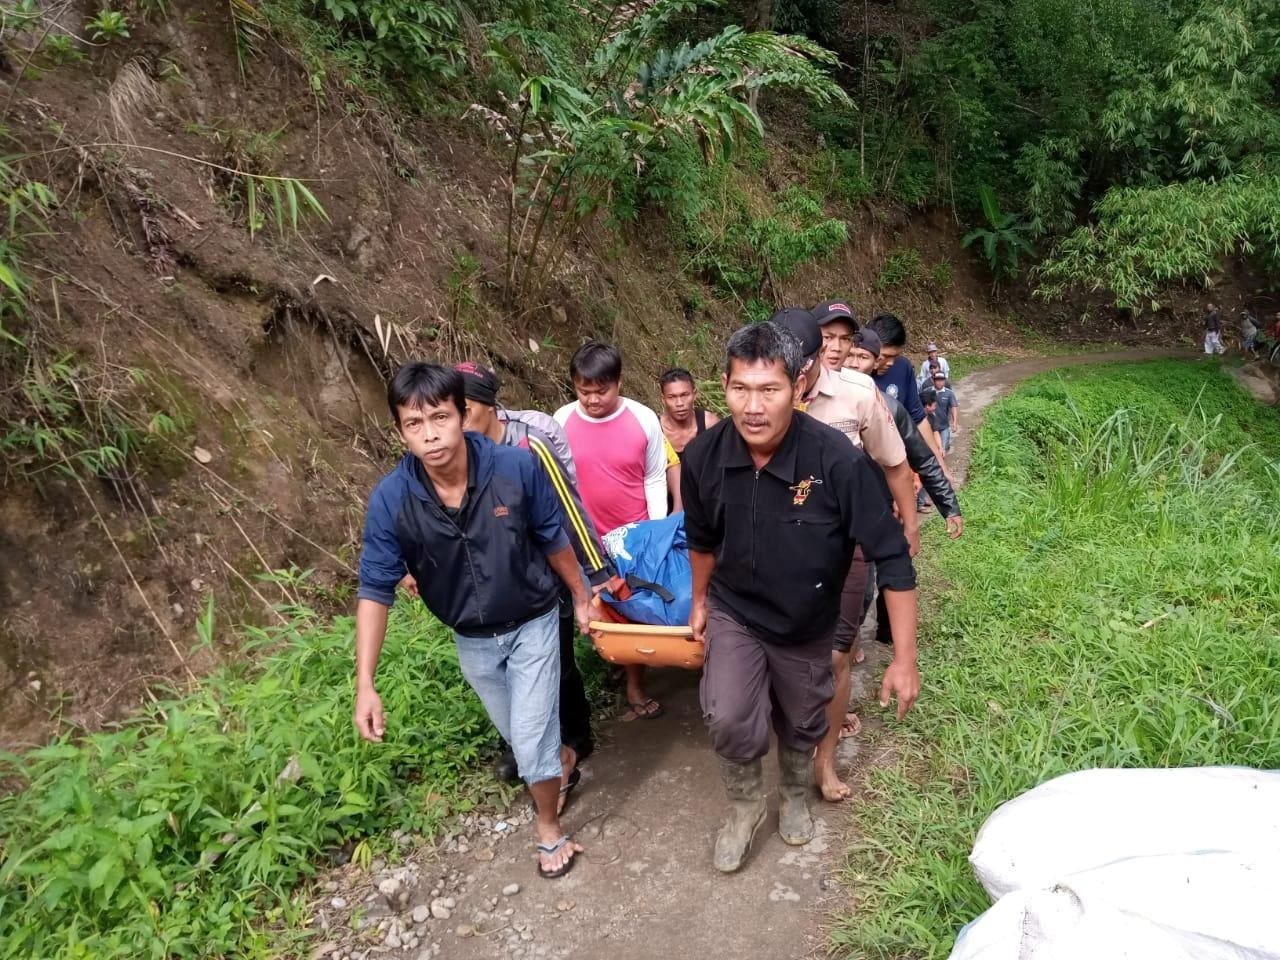 At least 26 killed as Indonesian bus tumbles into ravine